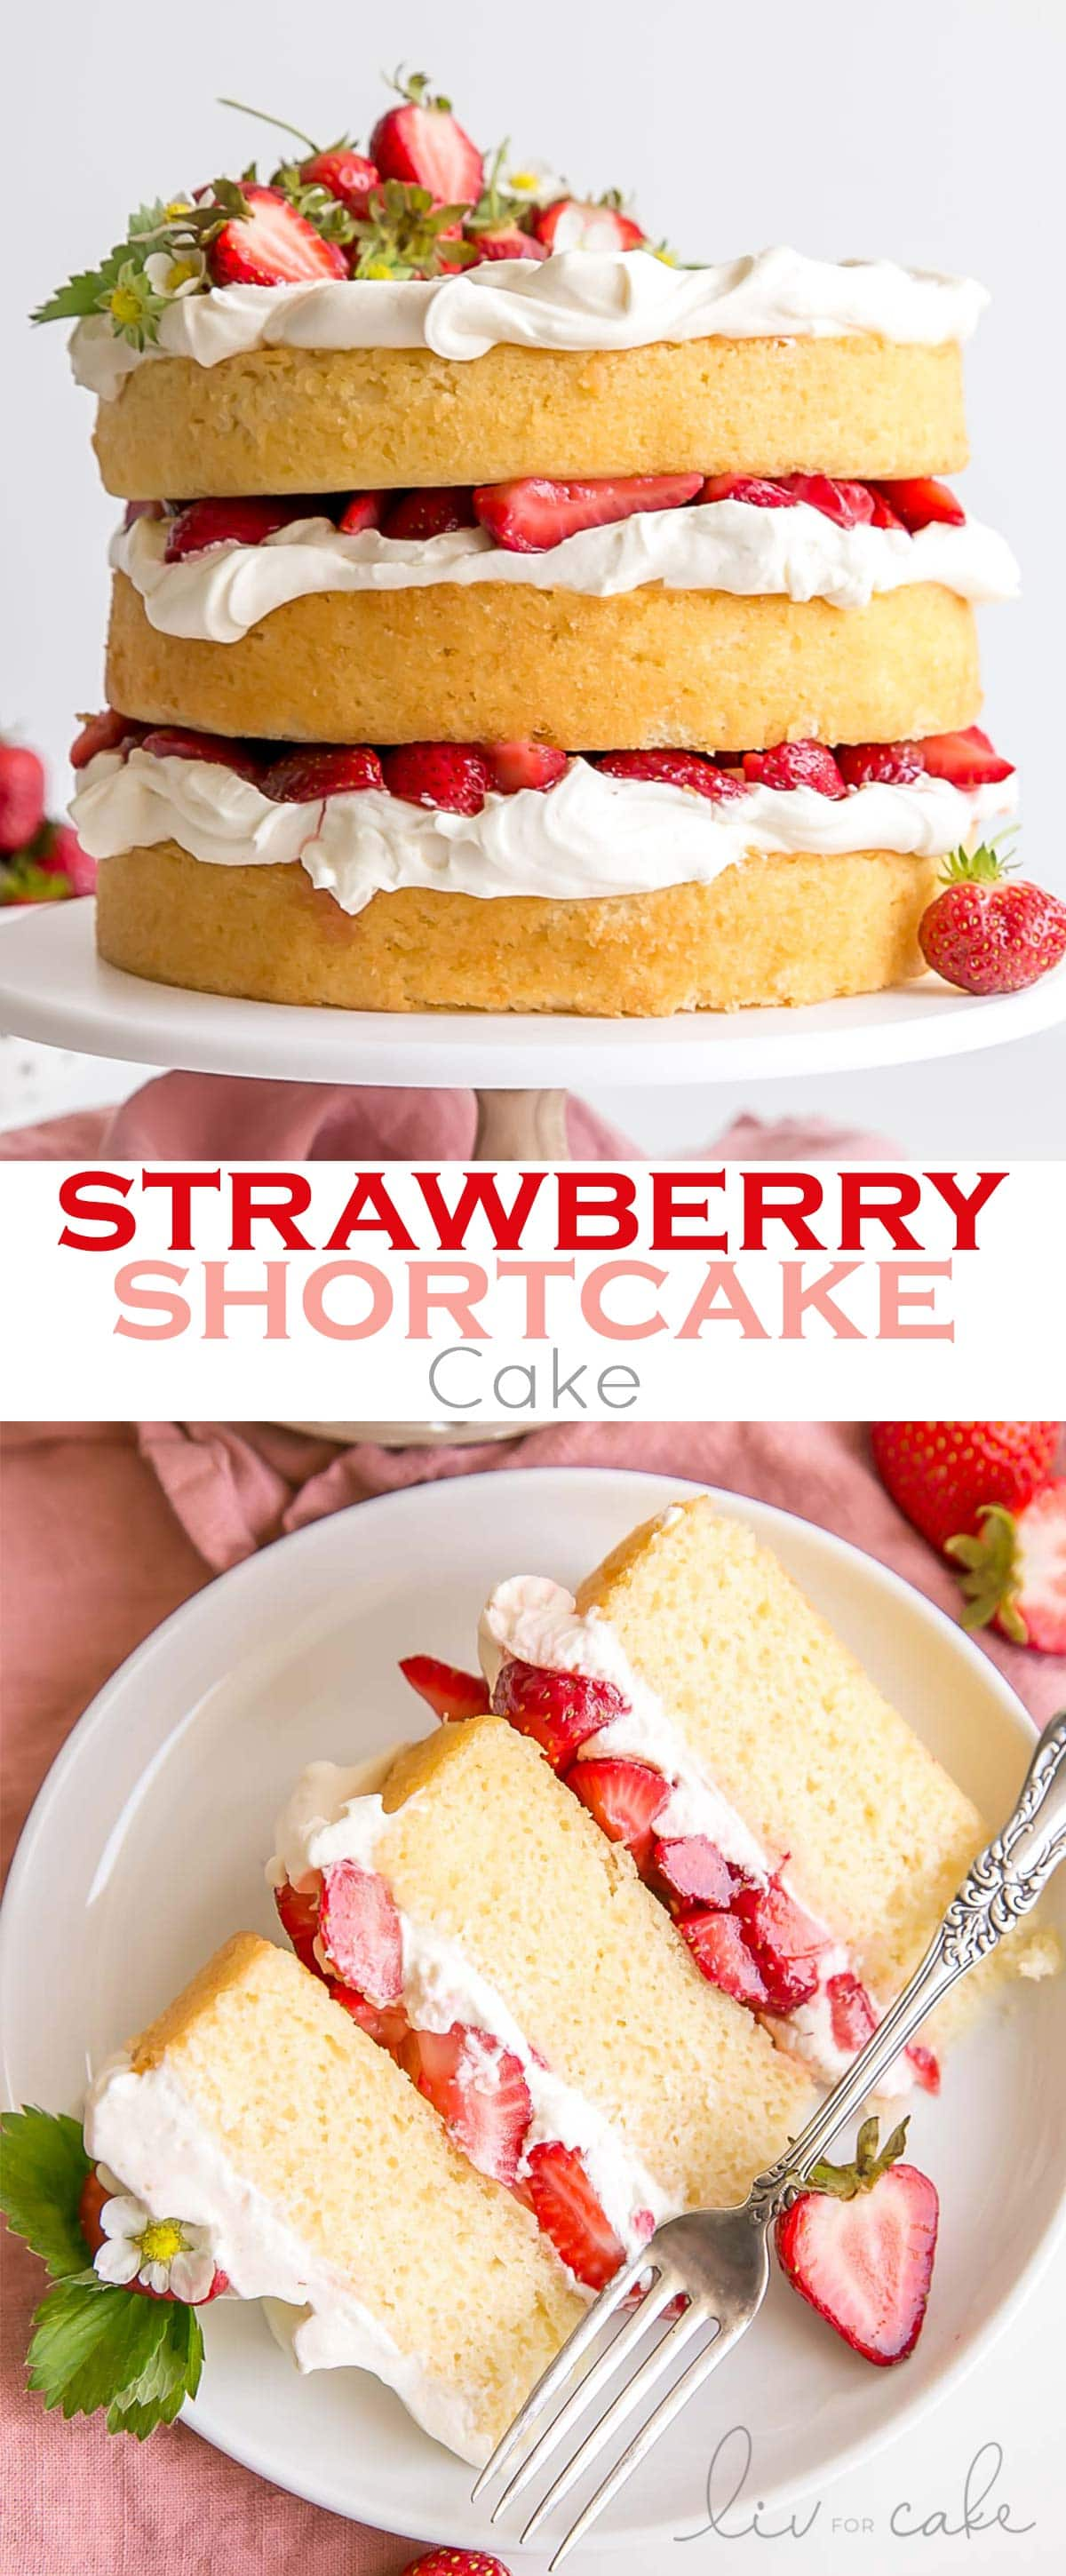 Strawberry Shortcake Cake collage